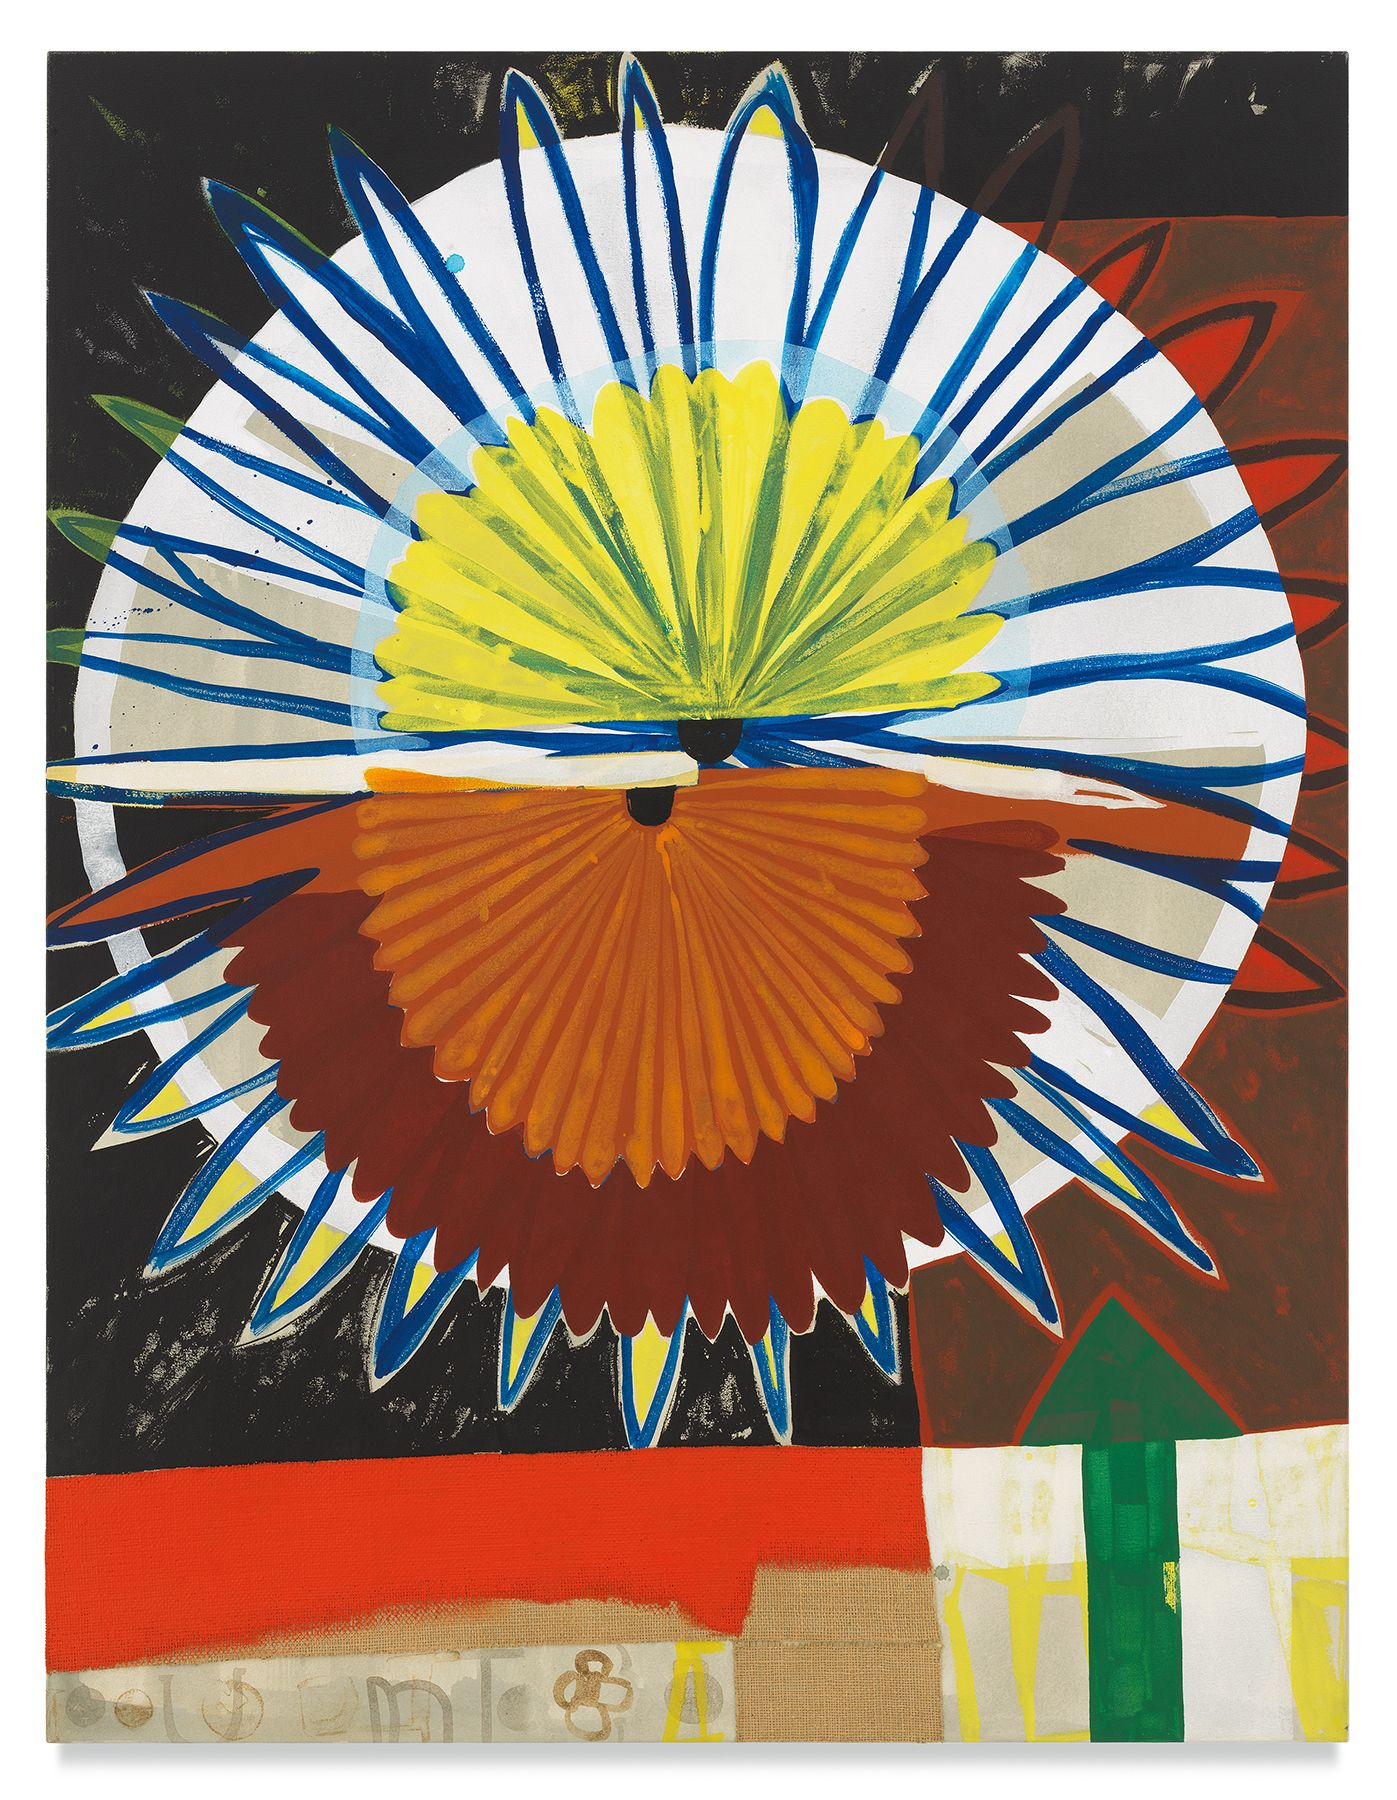 Roy Dowell, untitled #889, 2003, Acrylic and burlap on canvas